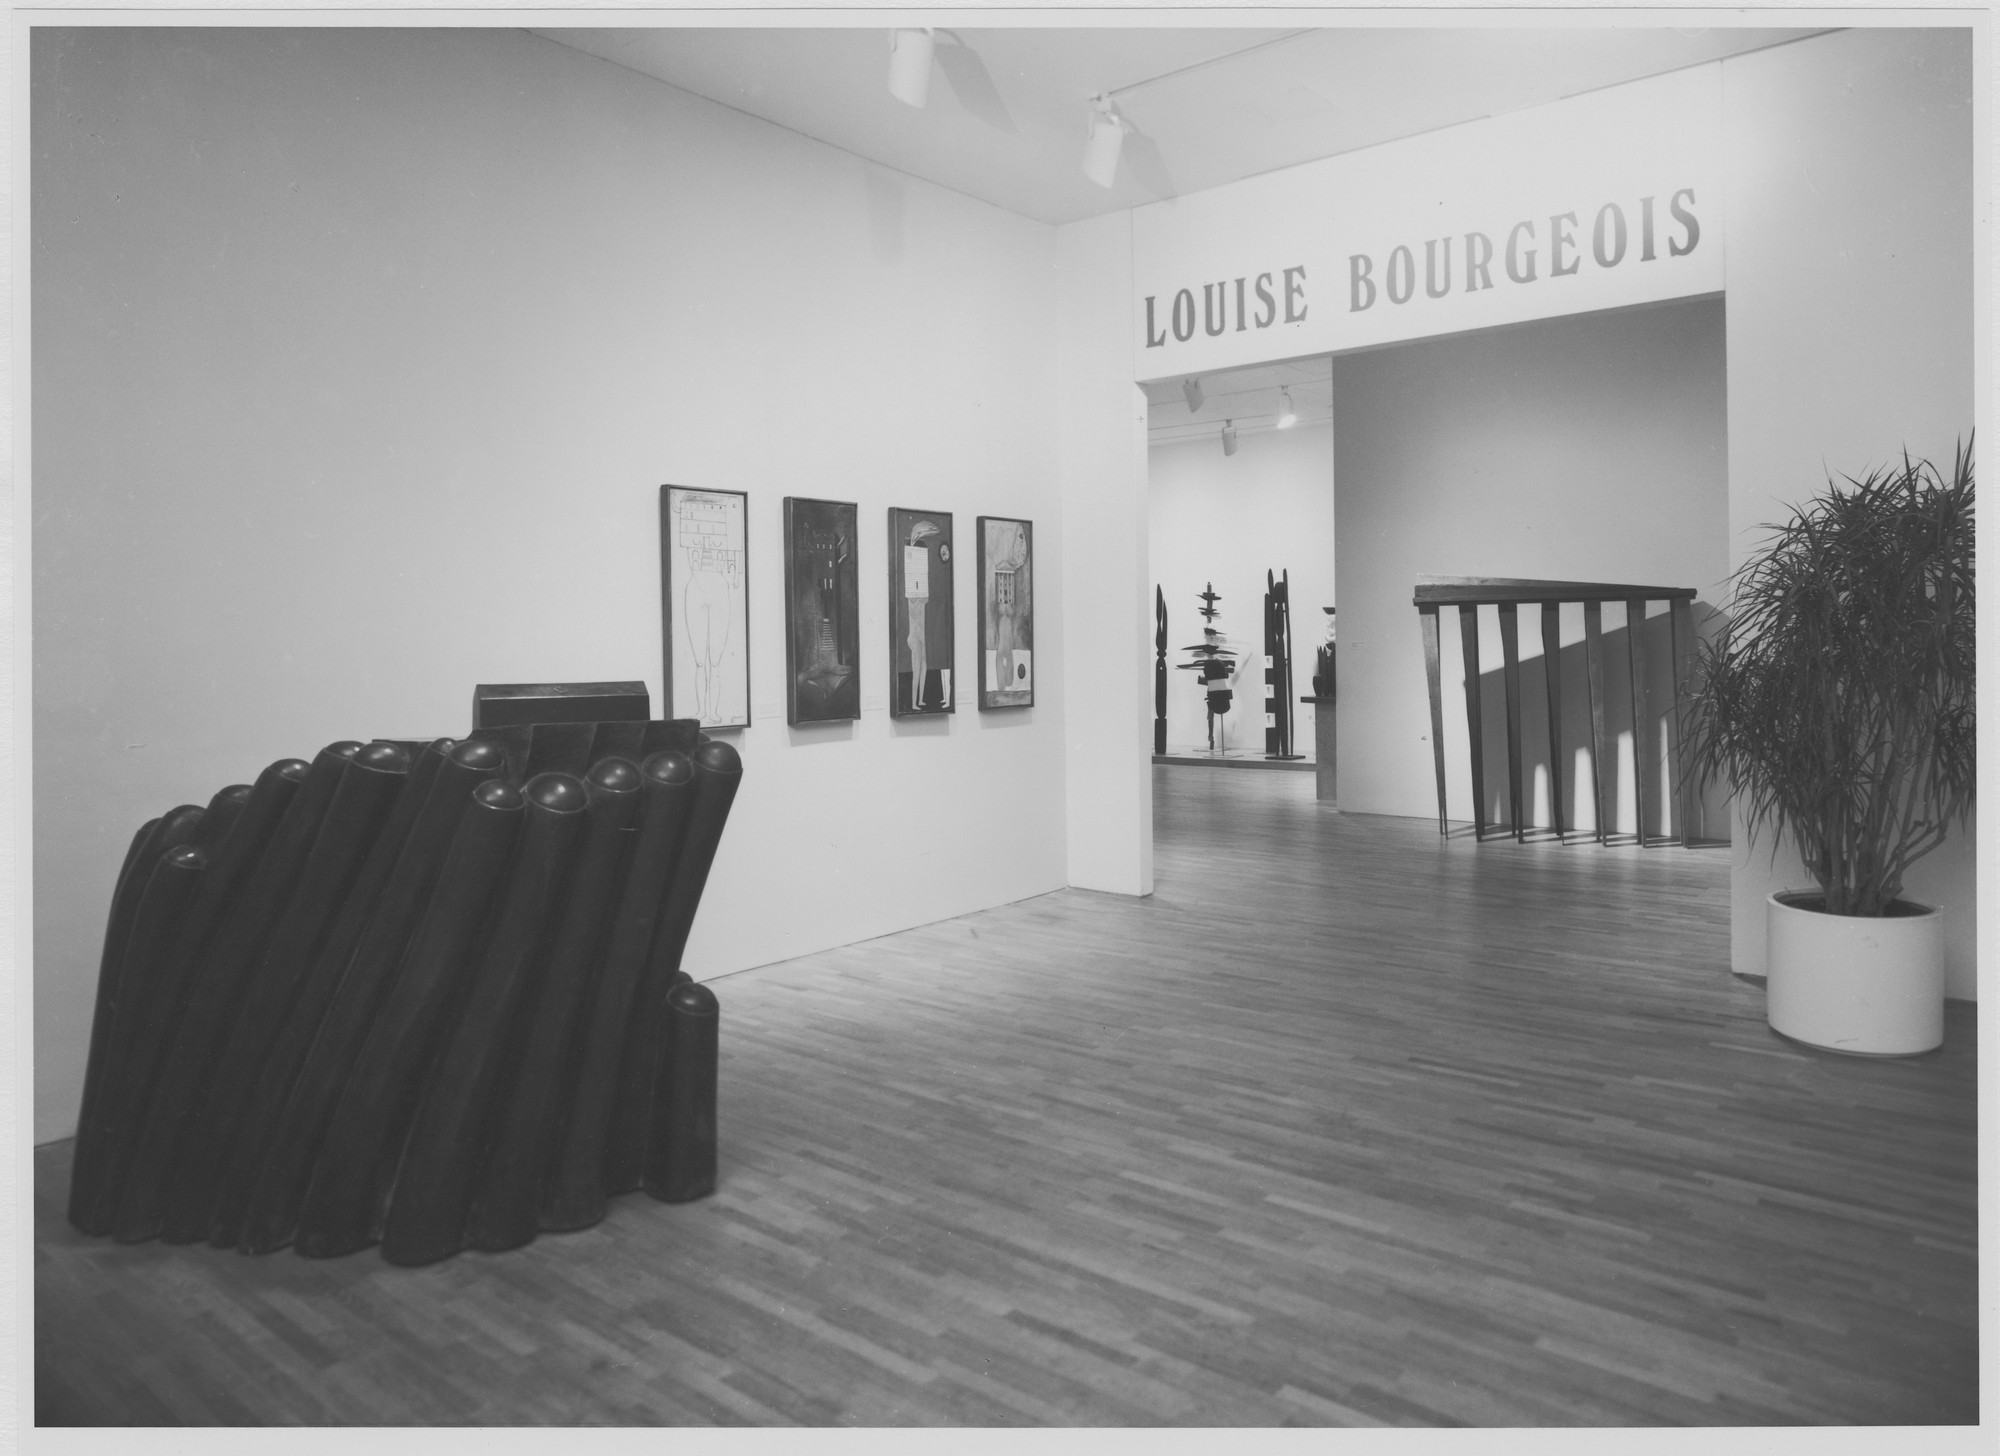 "Installation view of the exhibition, ""Louise Bourgeois"" November 3, 1982–February 8, 1983. Photographic Archive. The Museum of Modern Art Archives, New York. IN1337.1. Photograph by Katherine Keller."